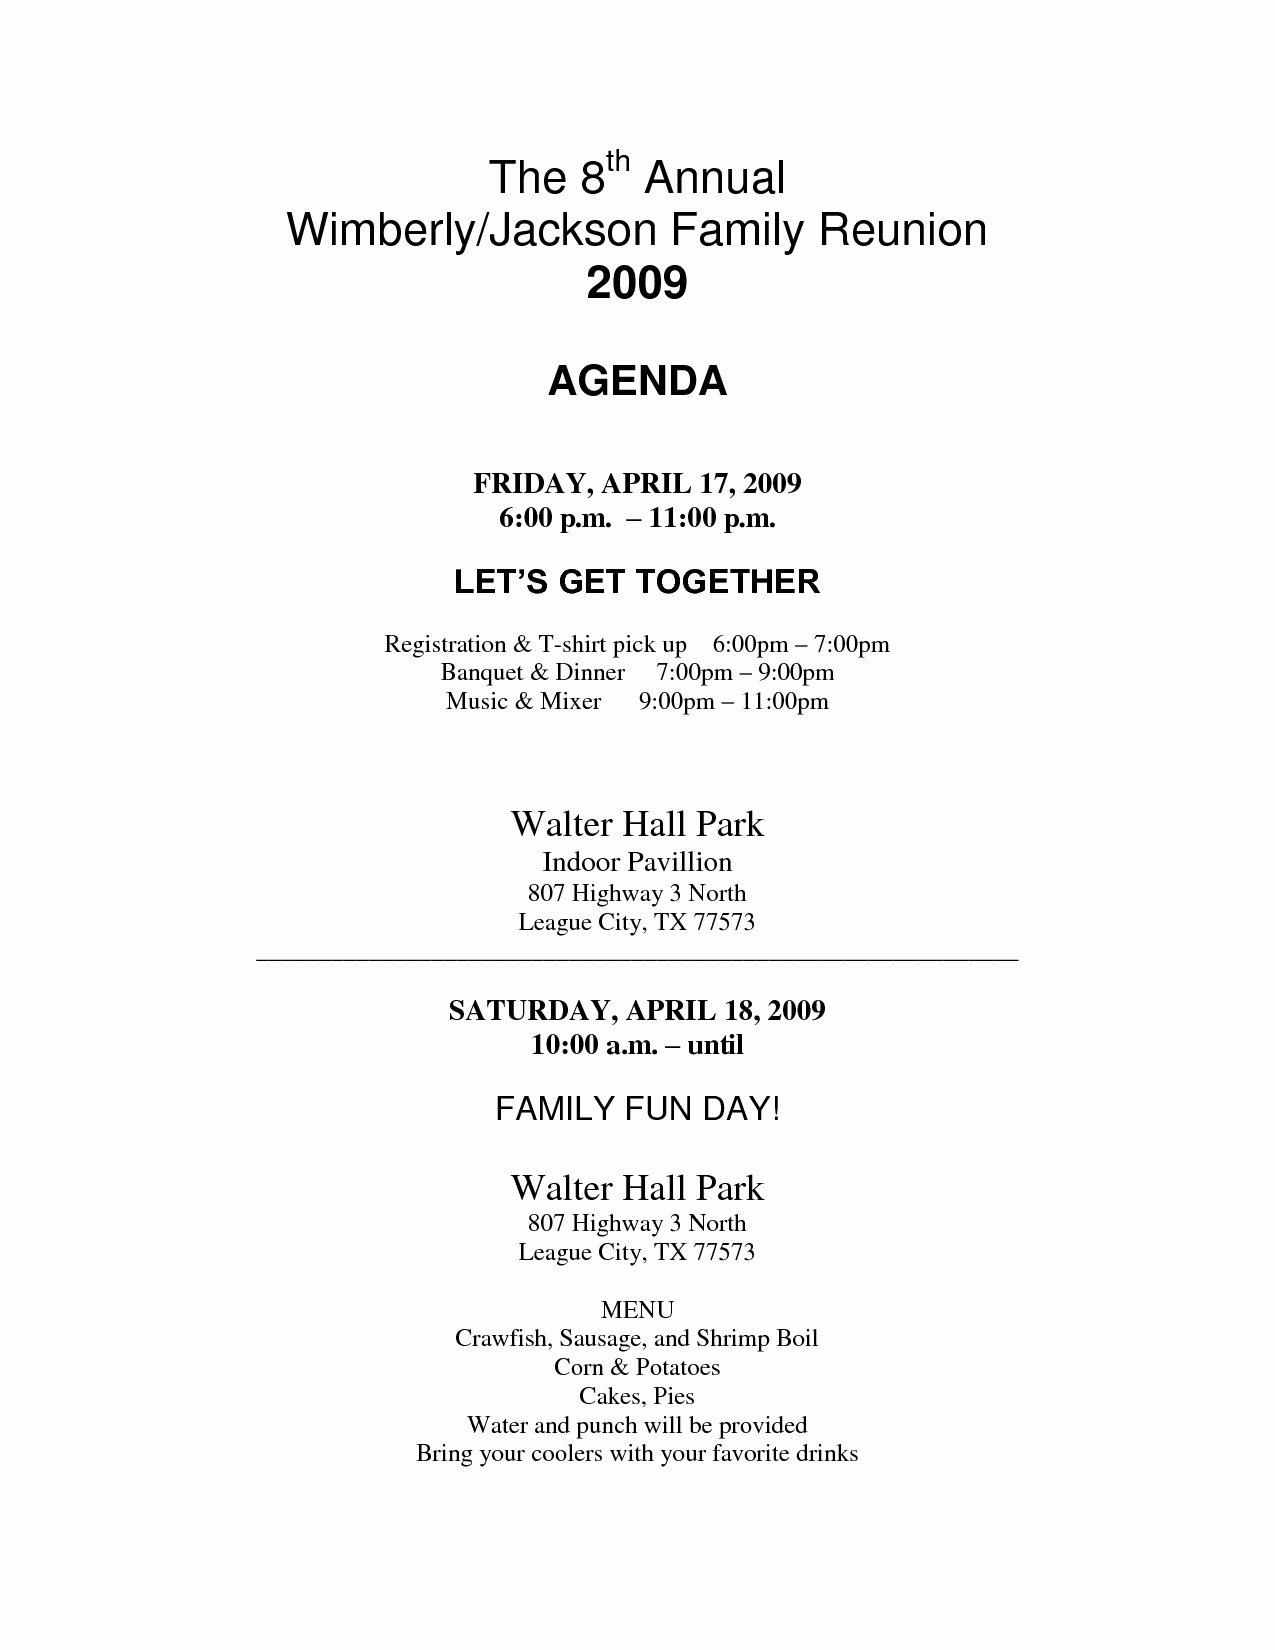 Family Reunion Agenda Template New African American Family Reunion Agenda to Pin On